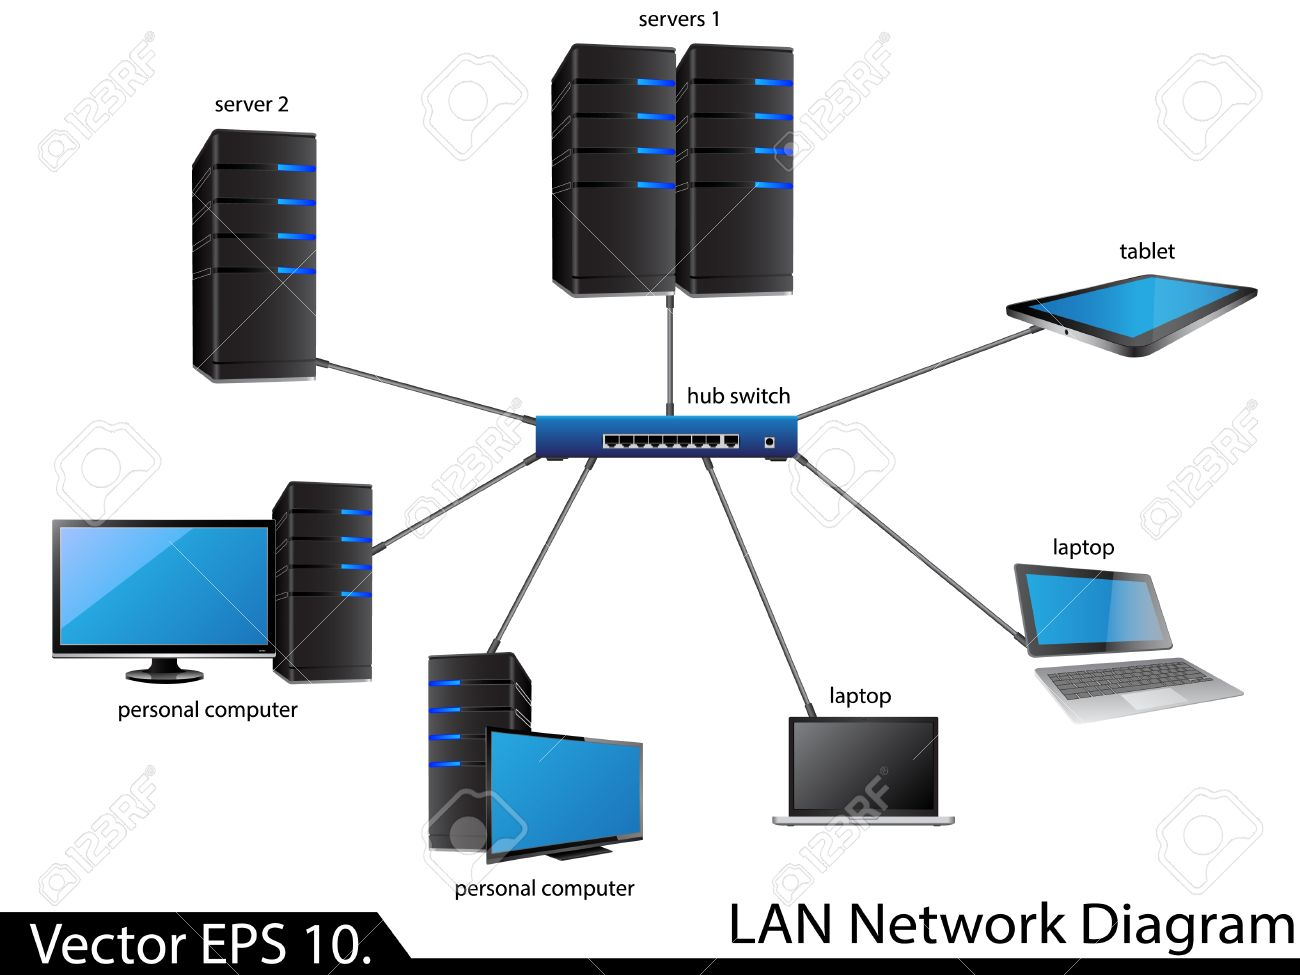 lan network diagram vector illustrator eps 10 for business and technology concept stock vector